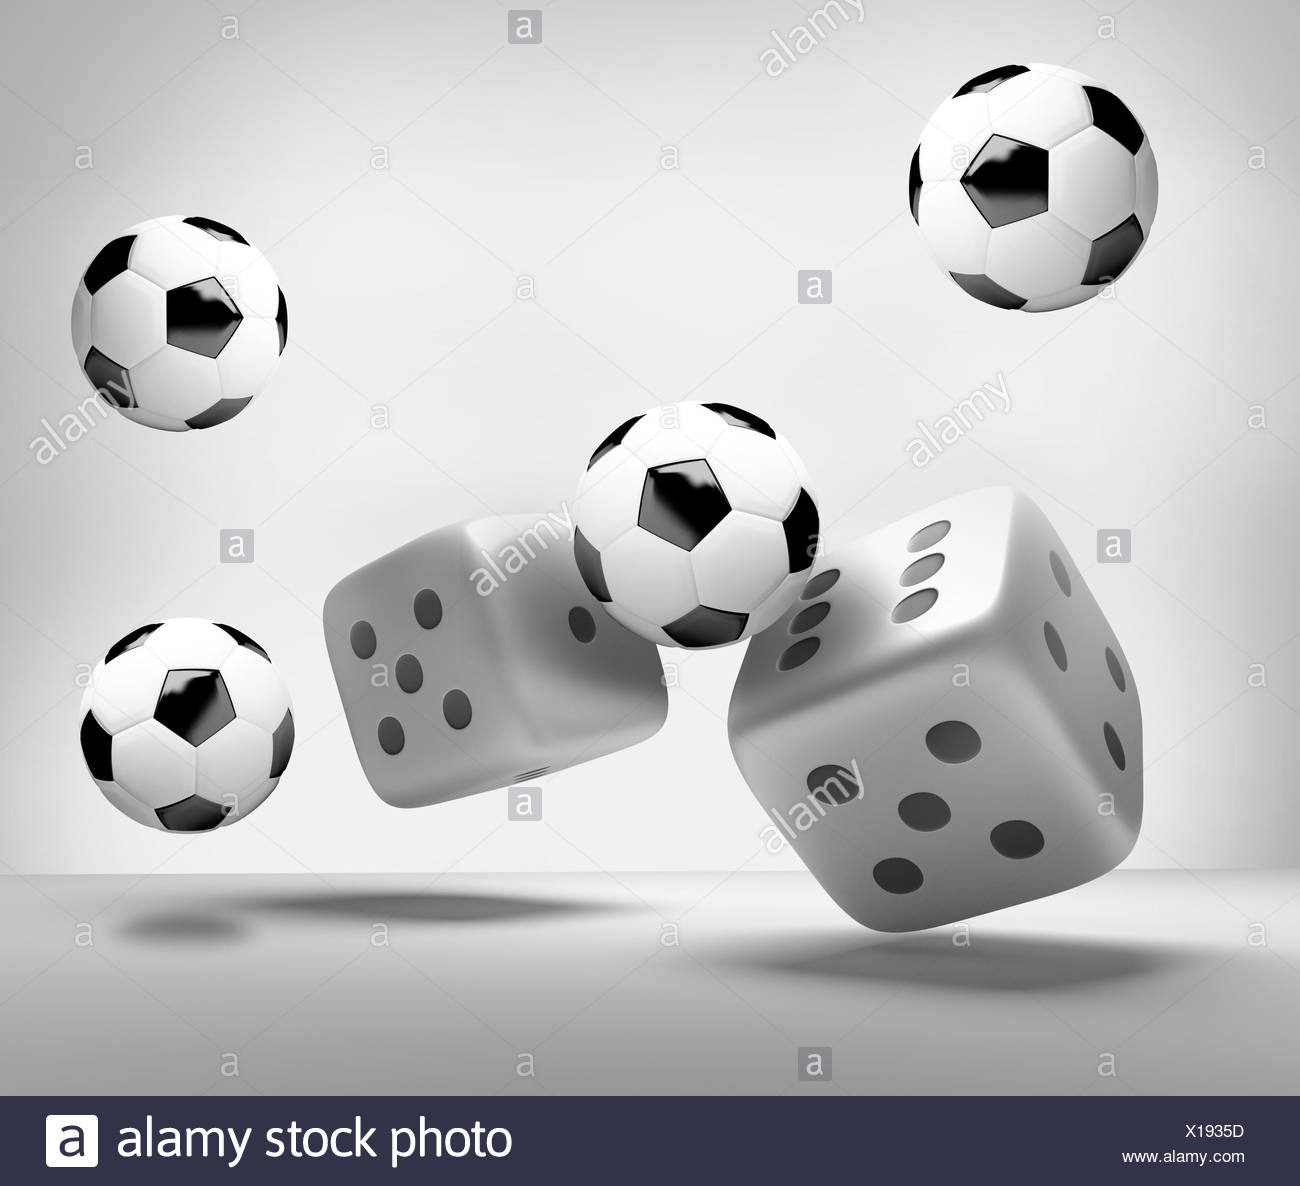 dices and soccer balls 3d render - Stock Image